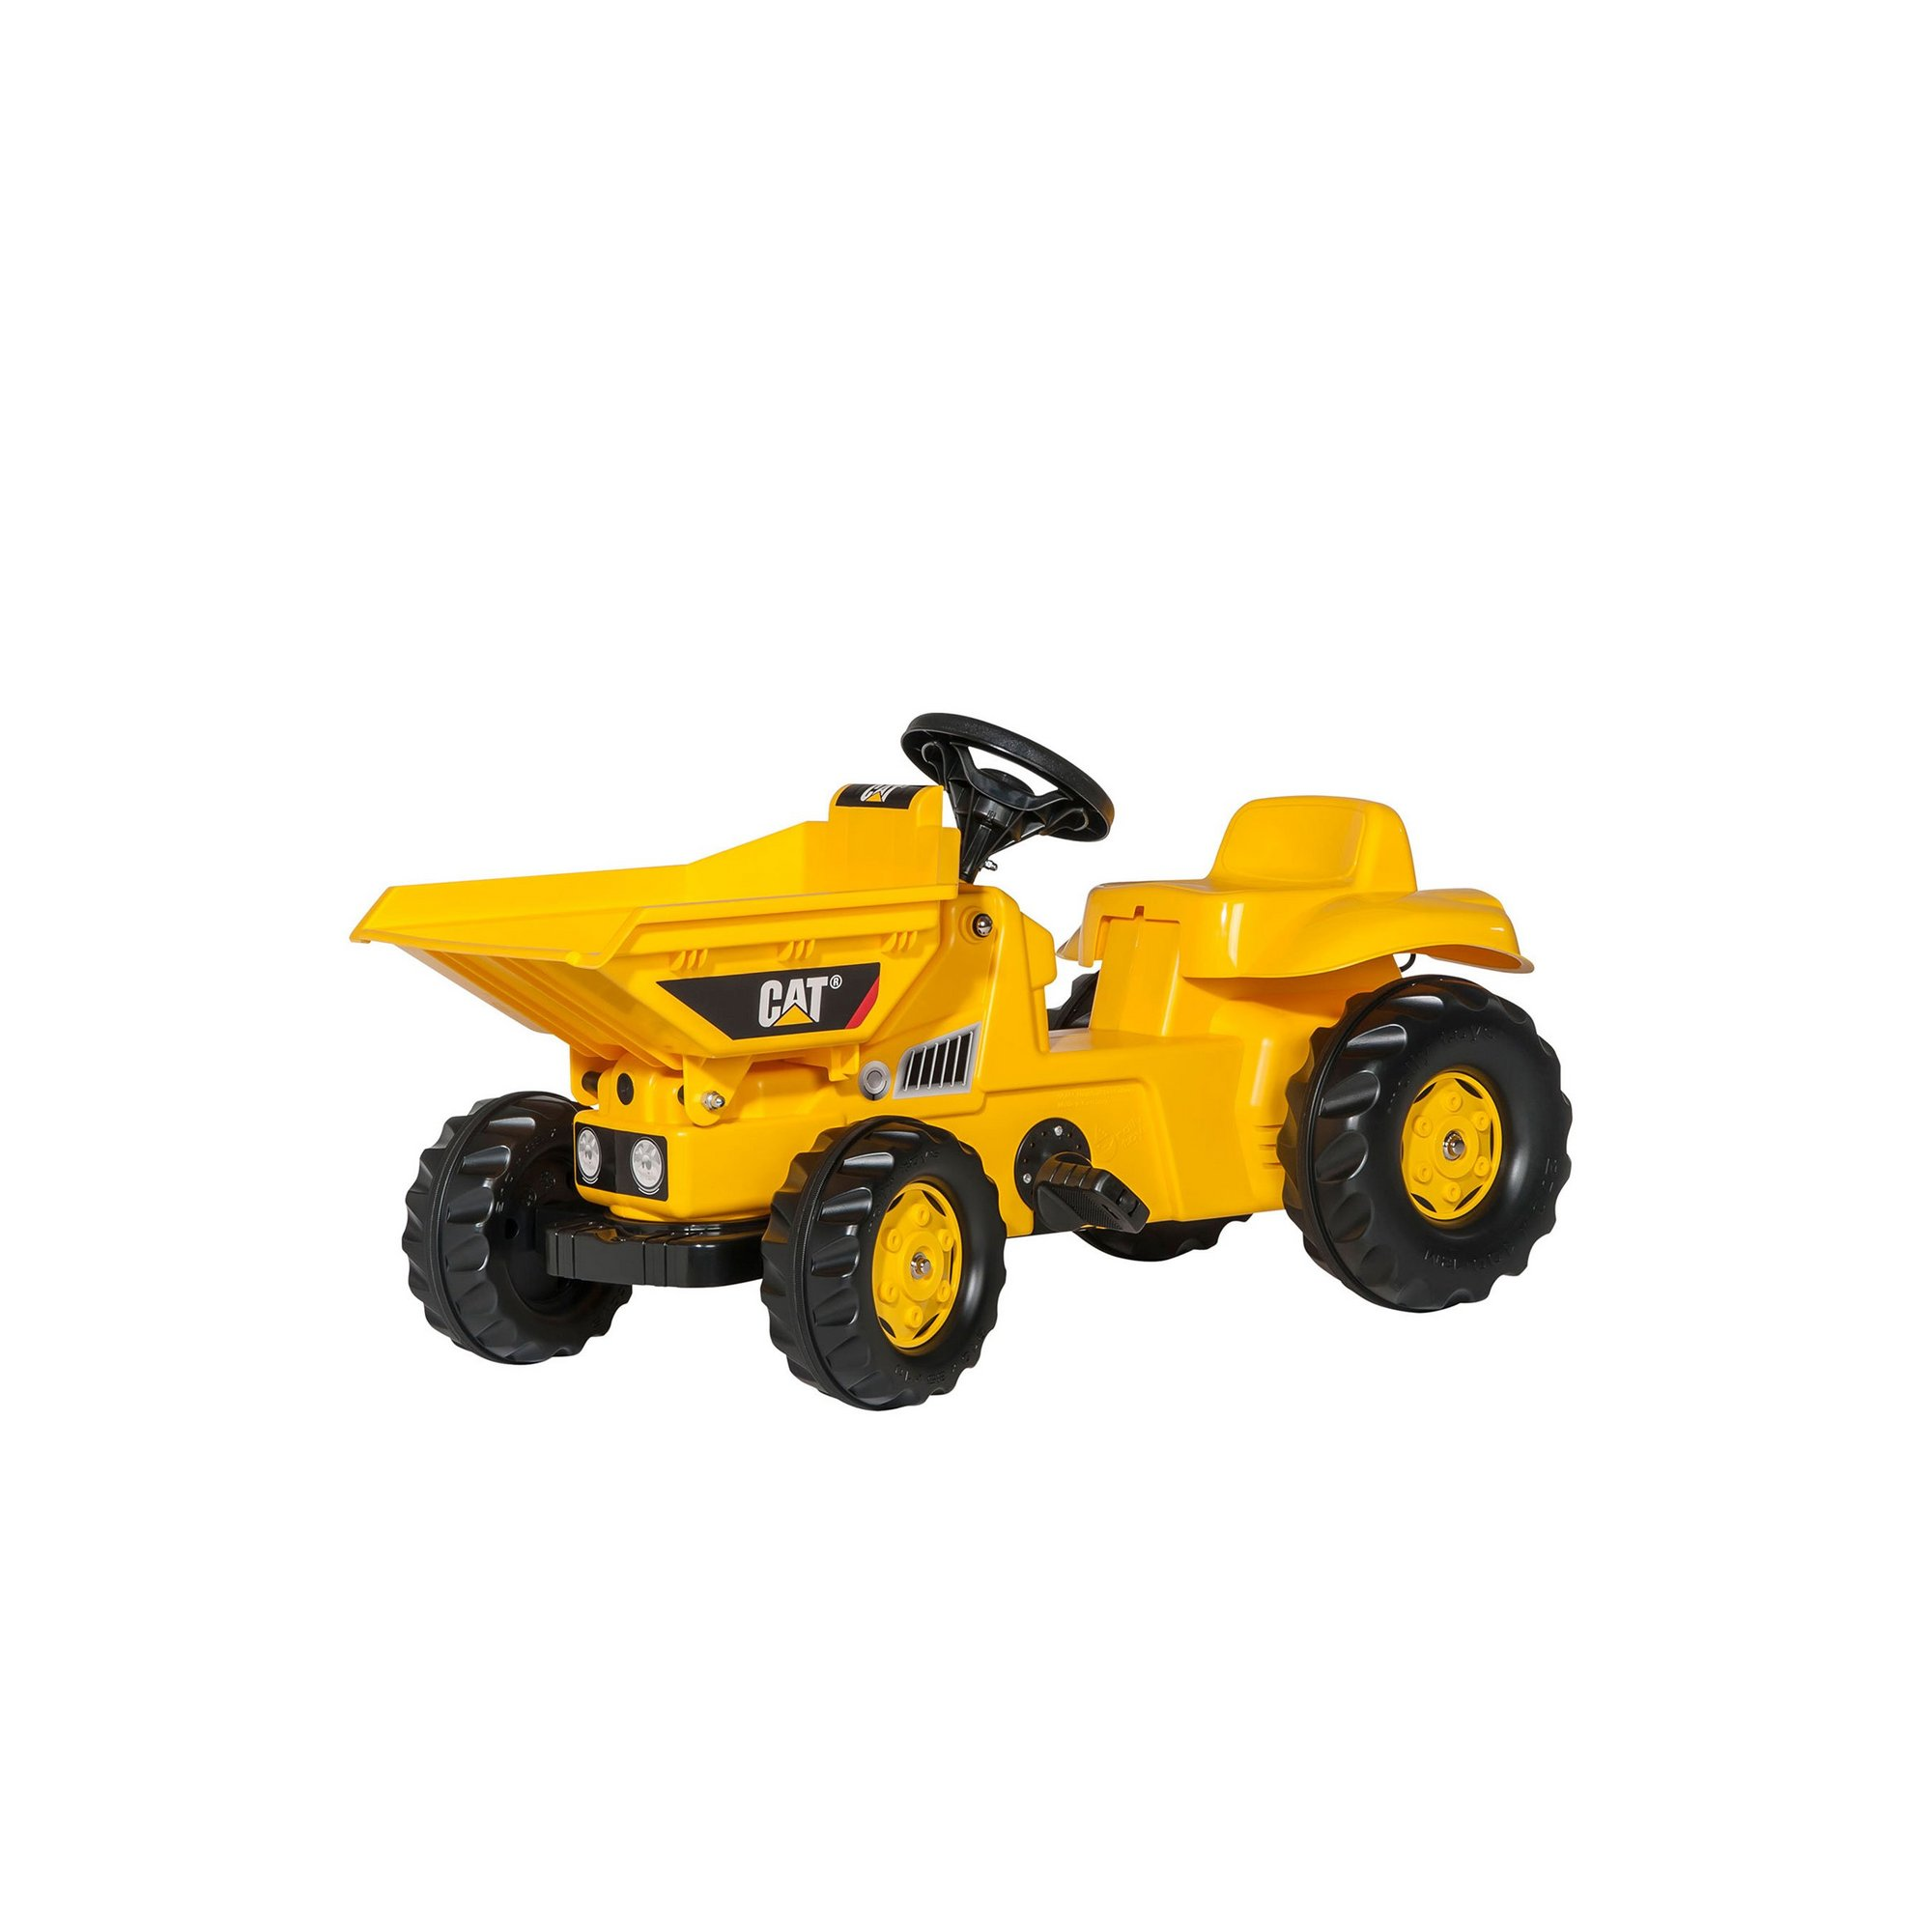 Image of Caterpillar Dumper